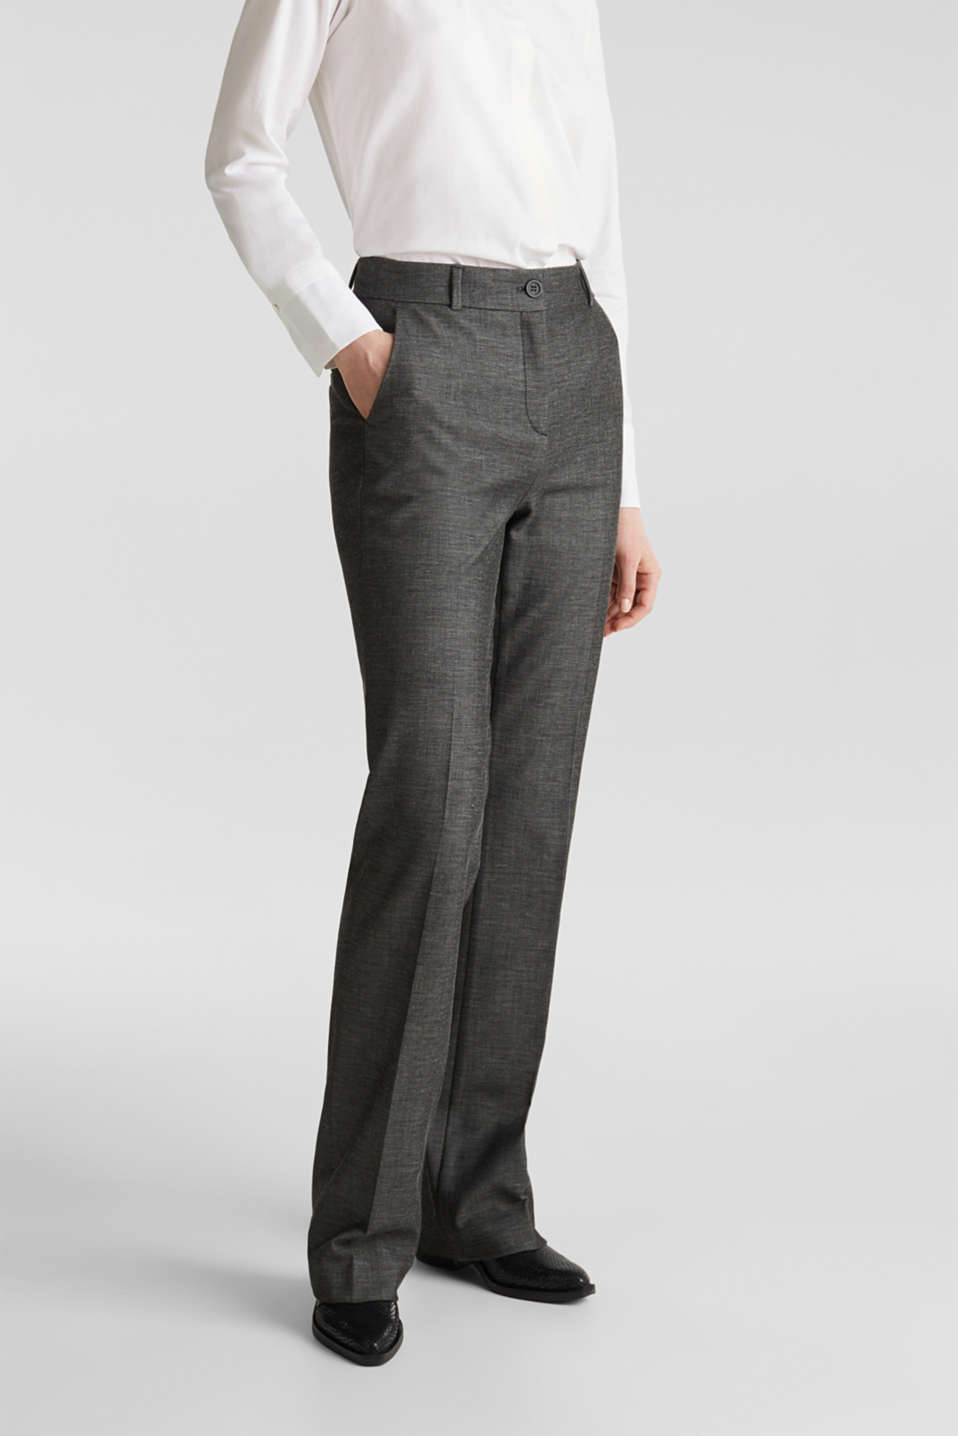 SHINY TEXTURE mix + match stretch trousers, DARK GREY 5, detail image number 6